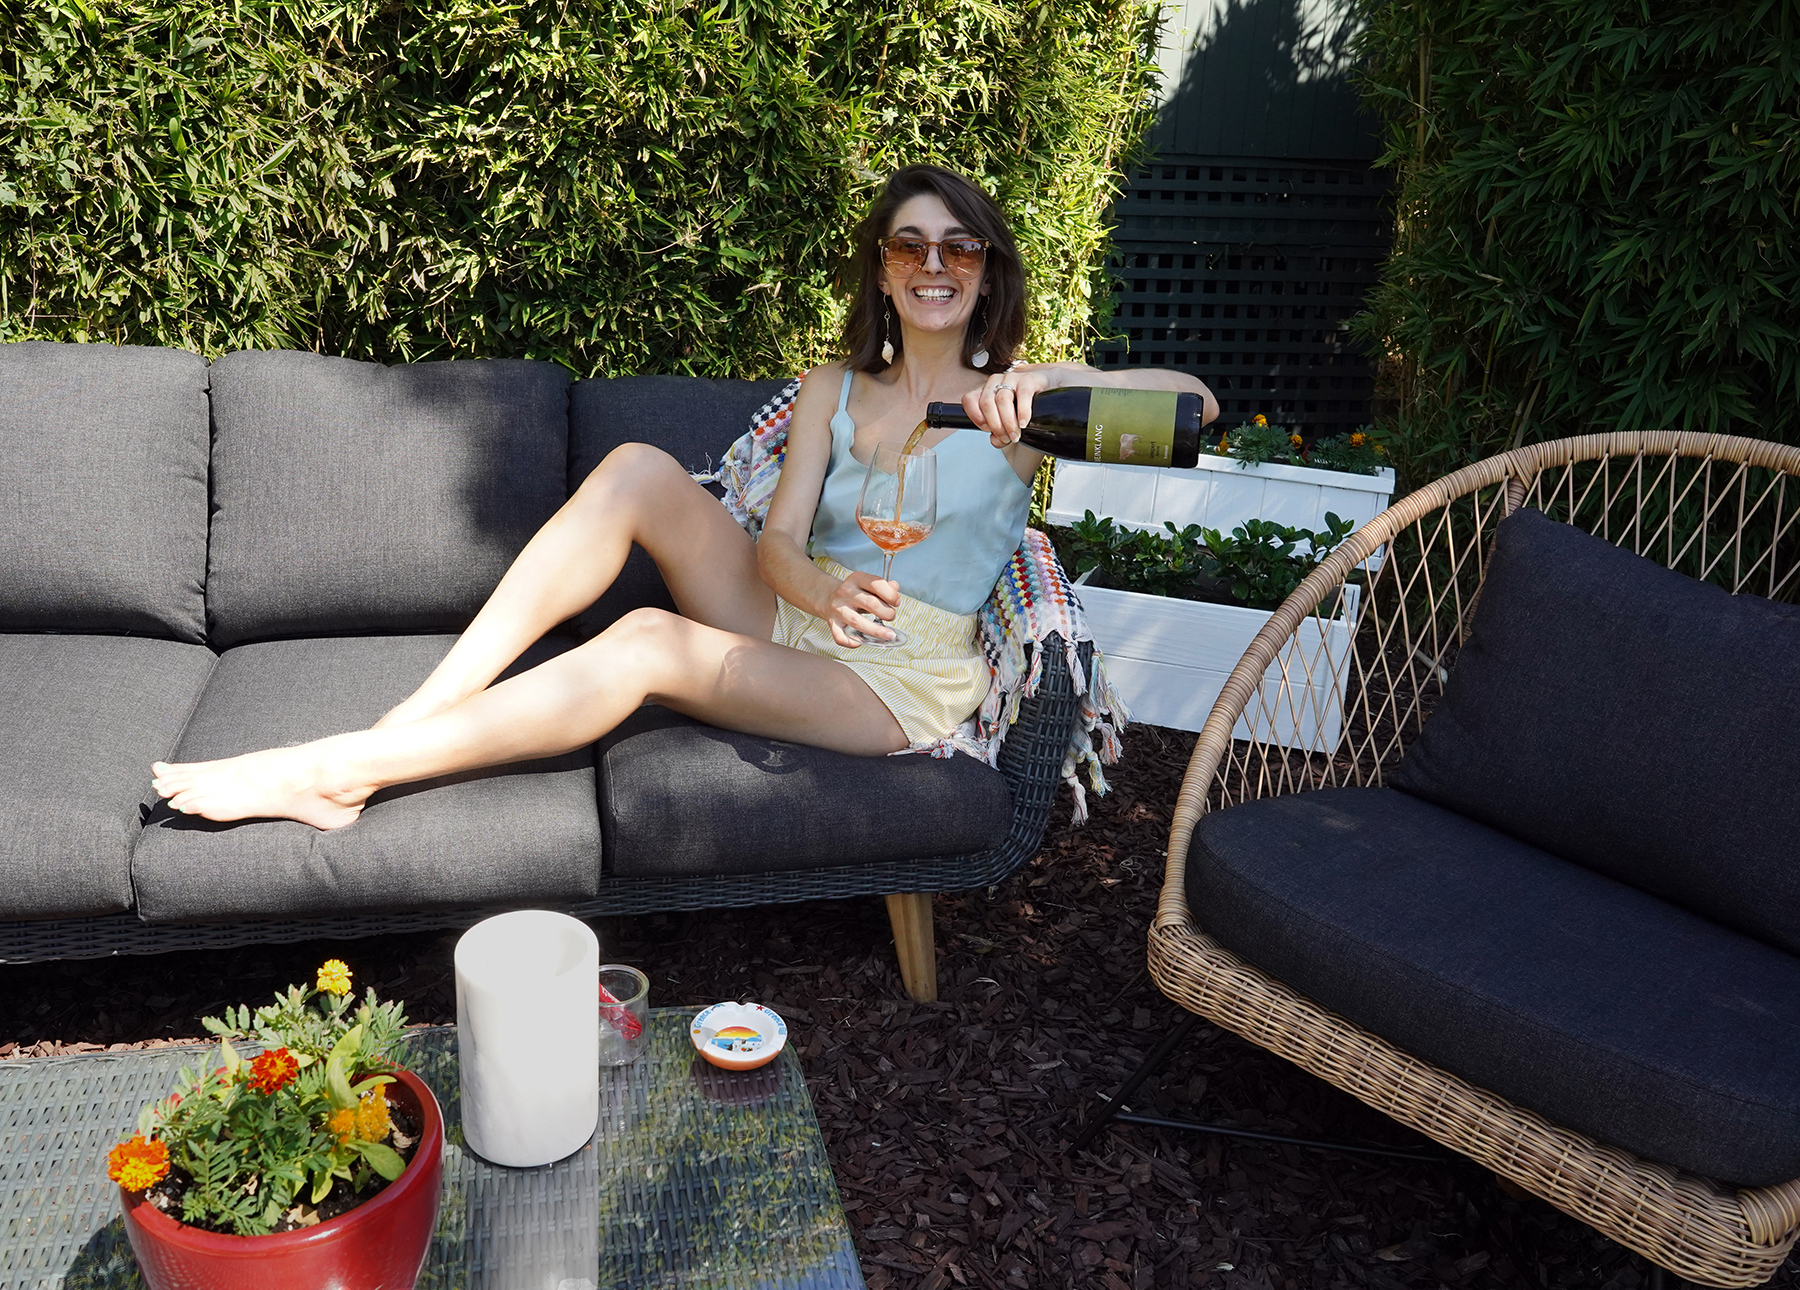 Marissa A. Ross pours a glass of wine while relaxing on her Ora outdoor sofa.